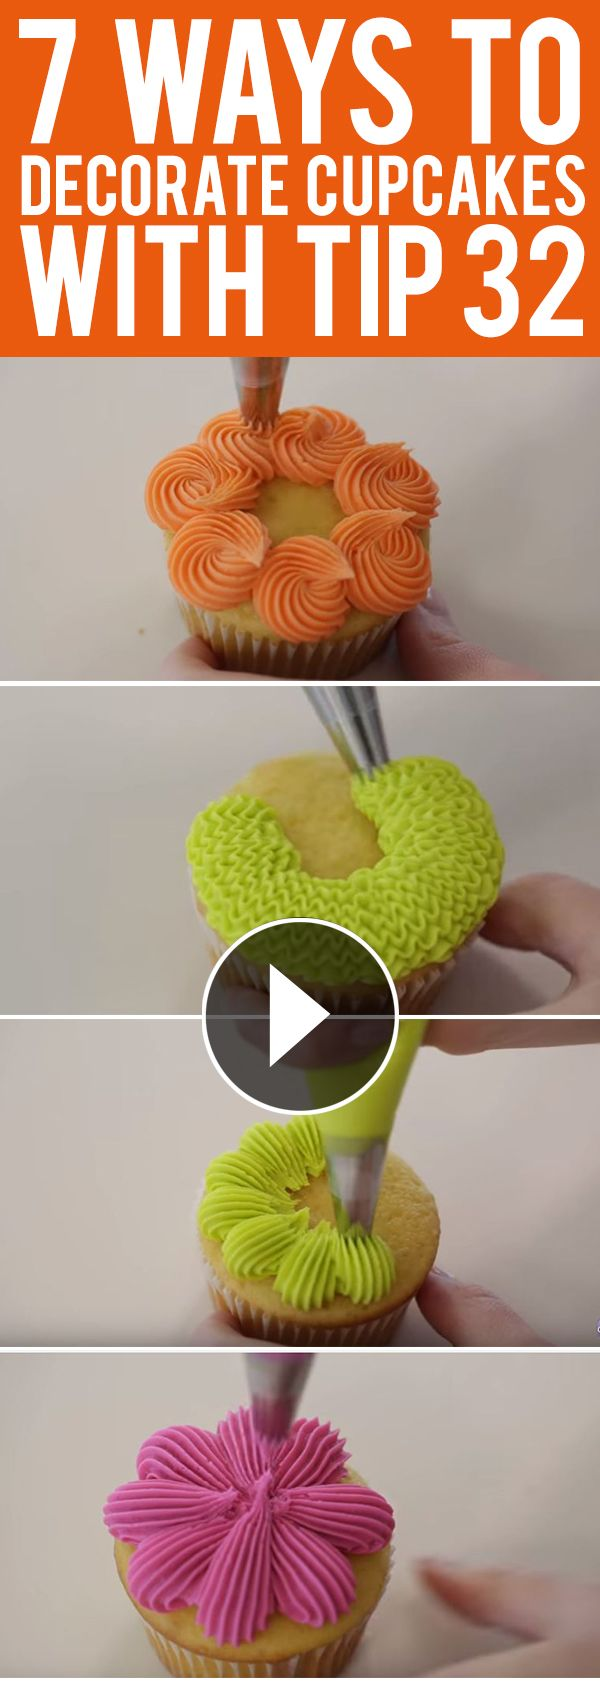 learn 7 easy ways to decorate cupcakes with wilton decorating tip